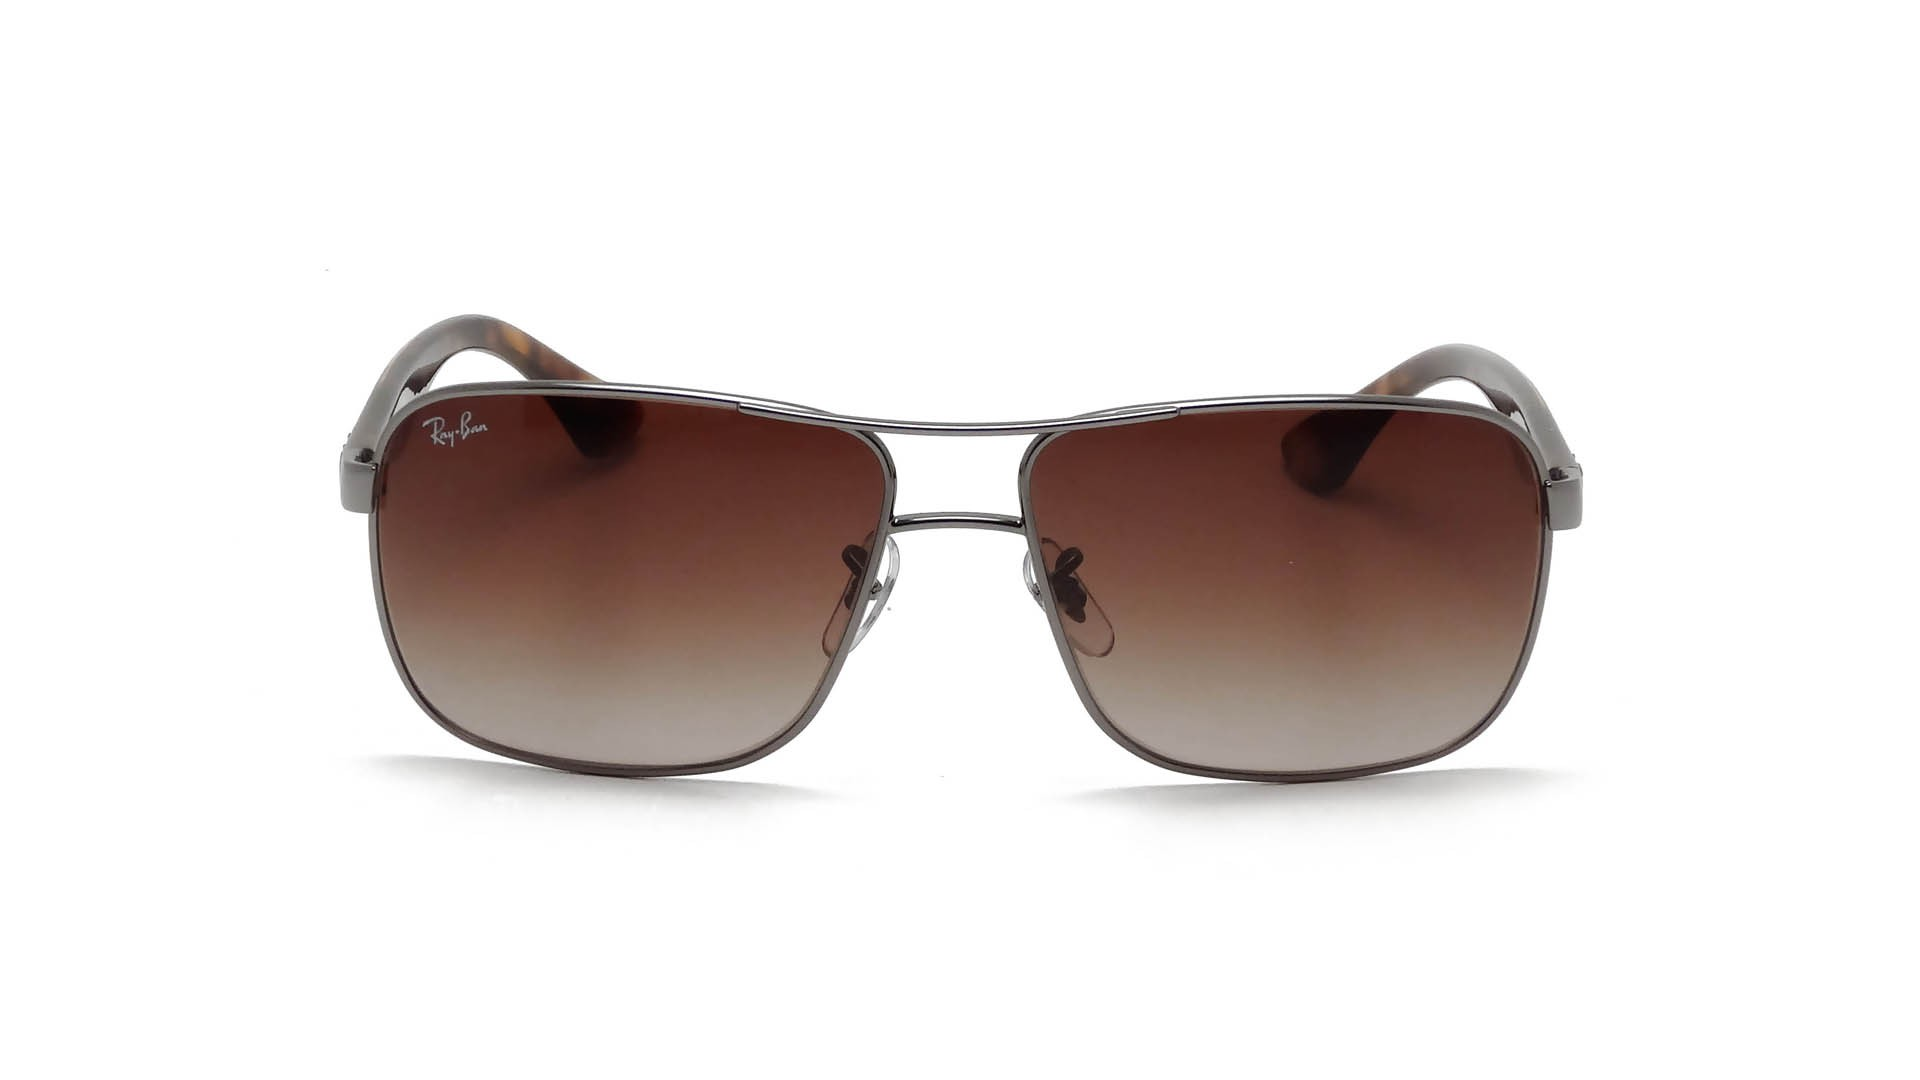 Sunglasses Ray Ban RB3516 004/13 62 15 Gold Large Gradient